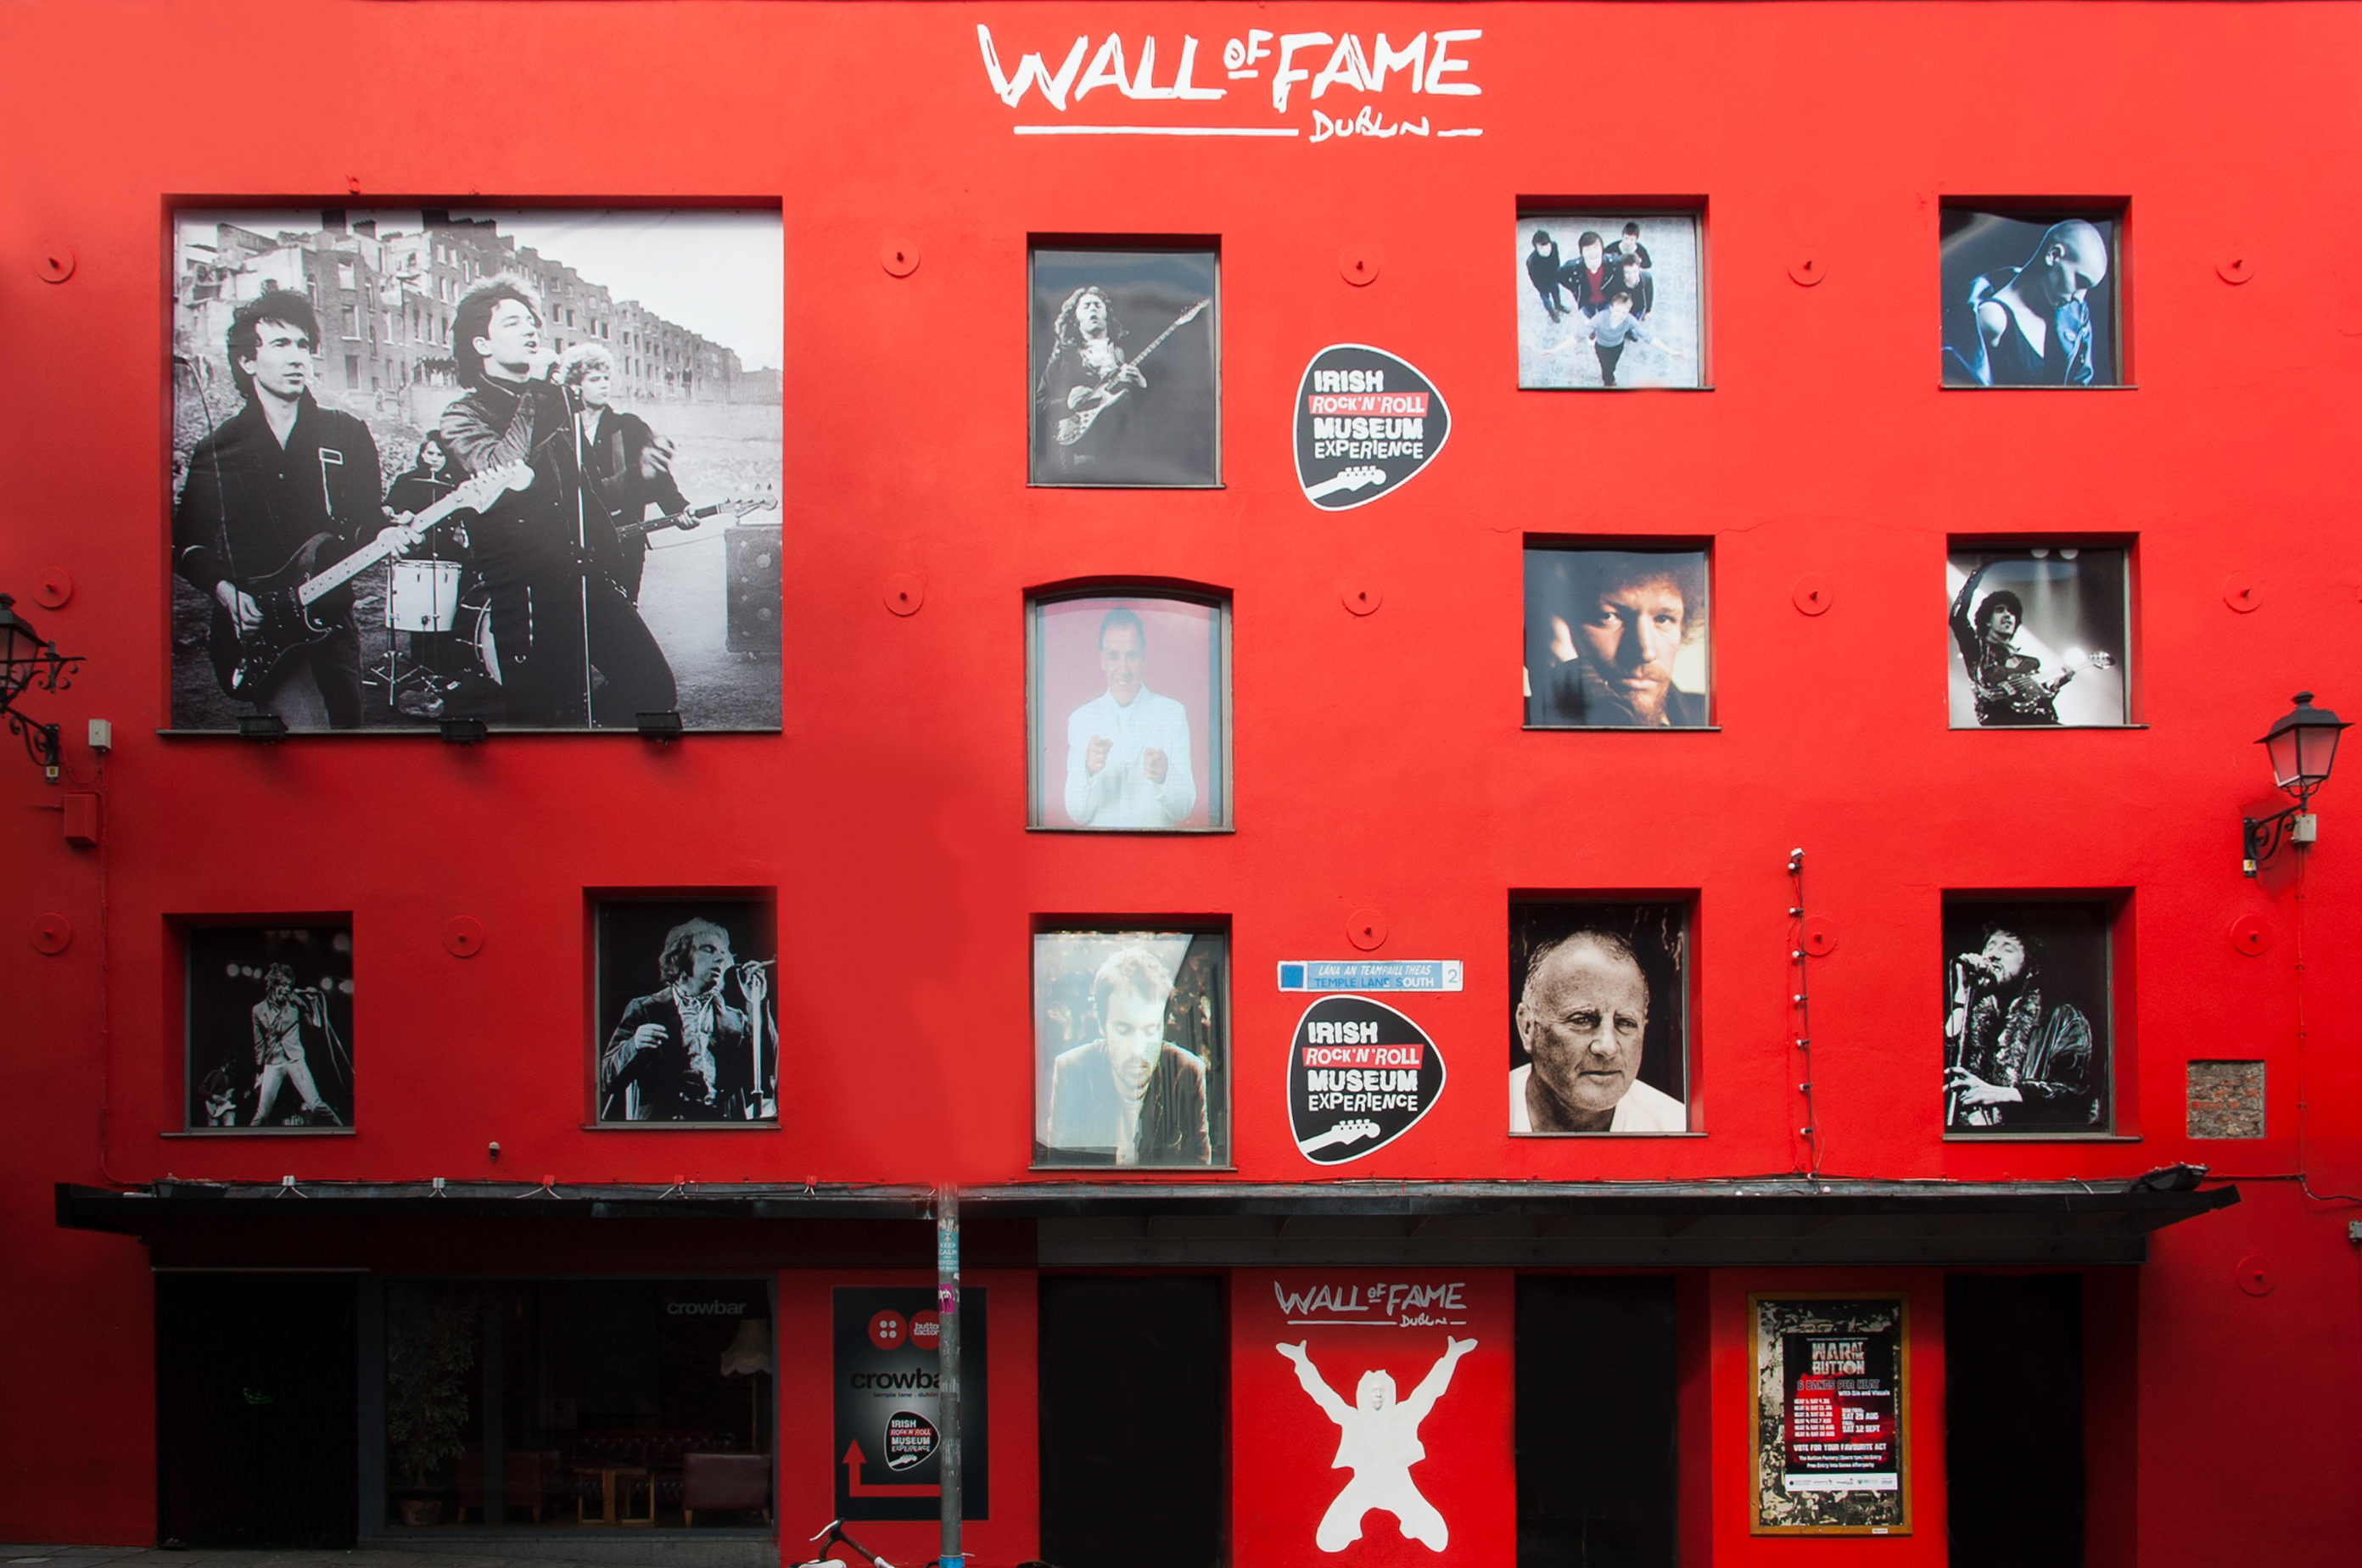 Hall of Fame (courtesy of Irish Rock n Roll Museum